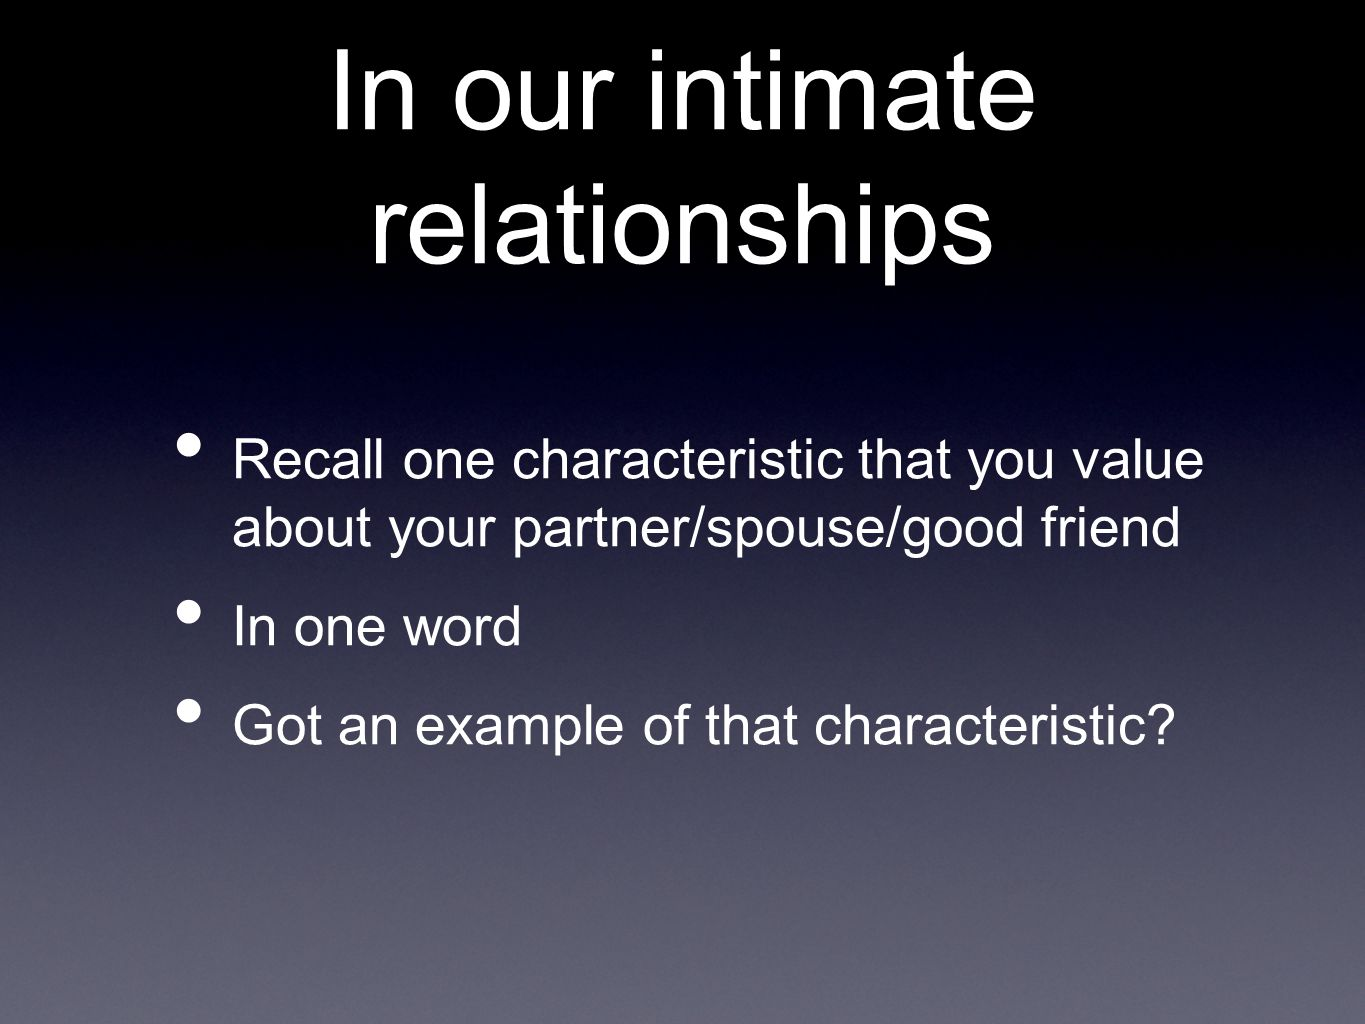 In our intimate relationships Recall one characteristic that you value about your partner/spouse/good friend In one word Got an example of that characteristic?